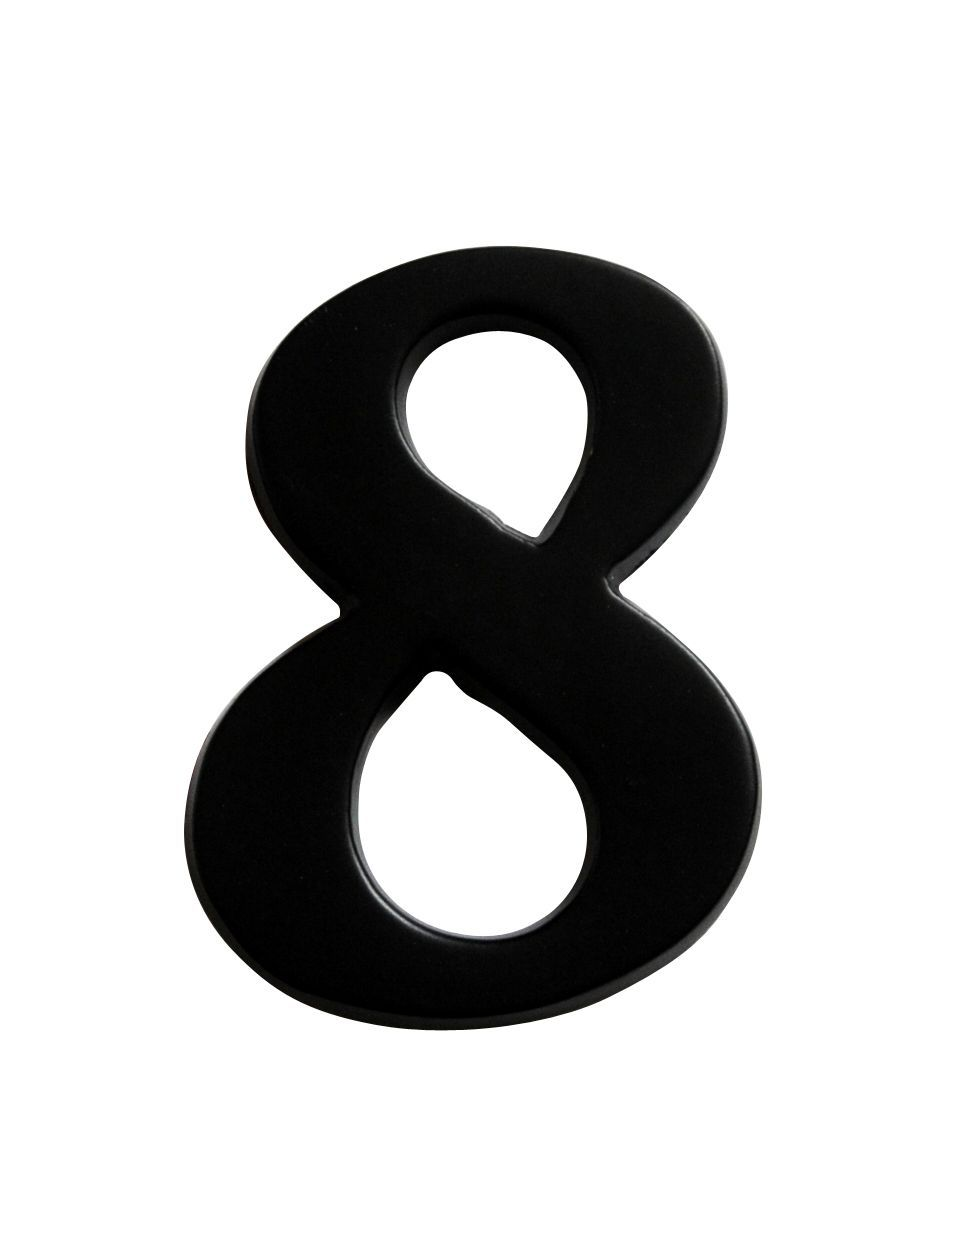 Iron Effect Metal 60mm House Number 8